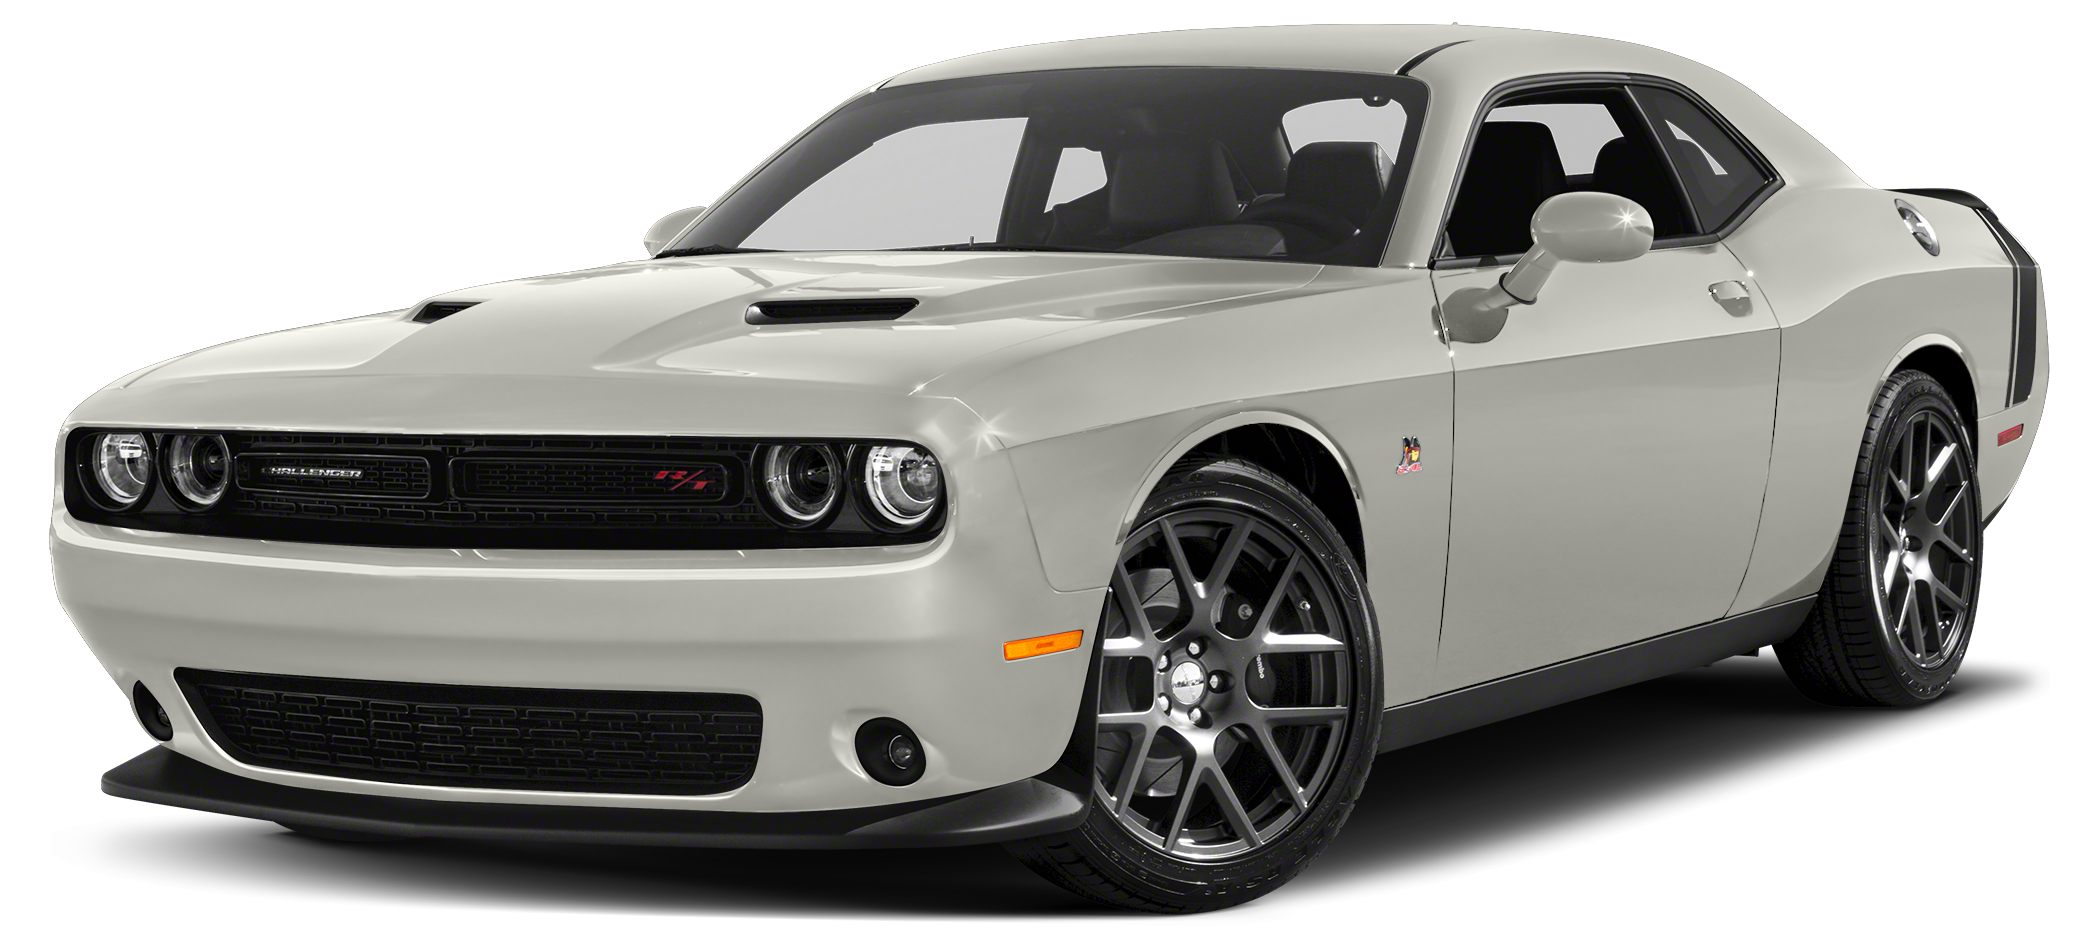 2016 Dodge Challenger RT Scat Pack Looking for a new car at an affordable price Introducing the